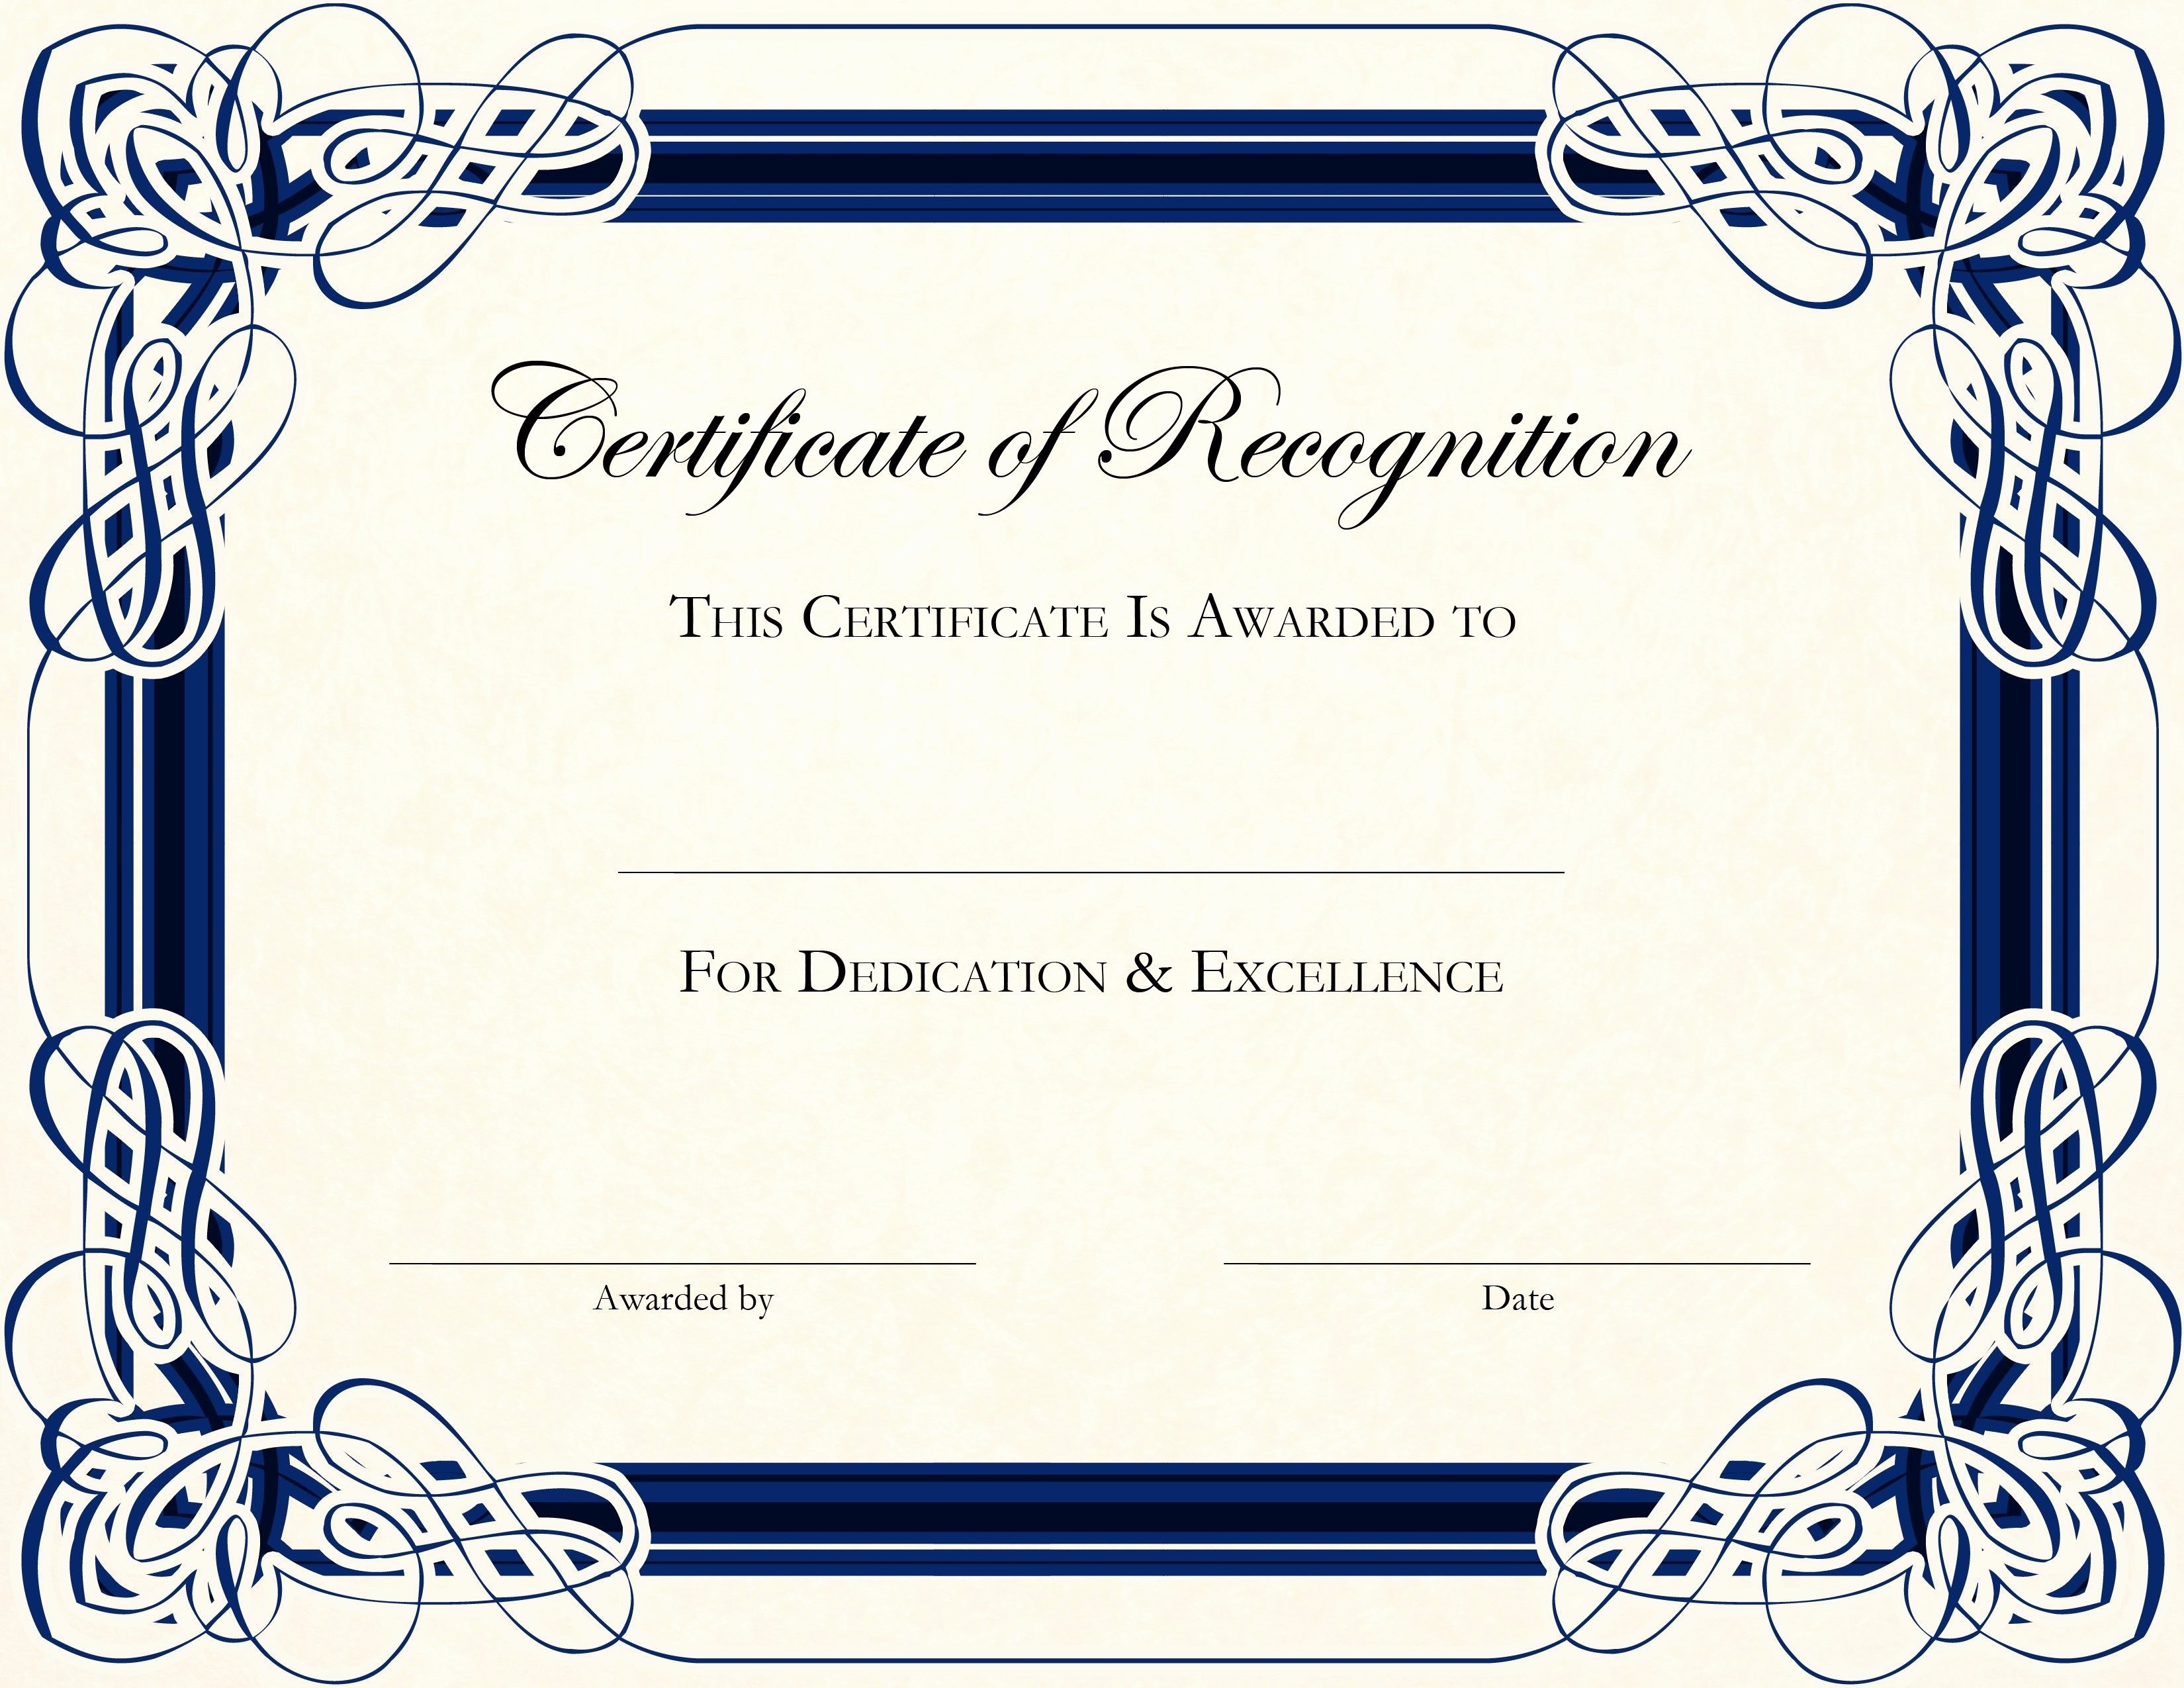 Free Downloadable Award Certificate Templates Inspirational Free Printable Certificate Templates for Teachers